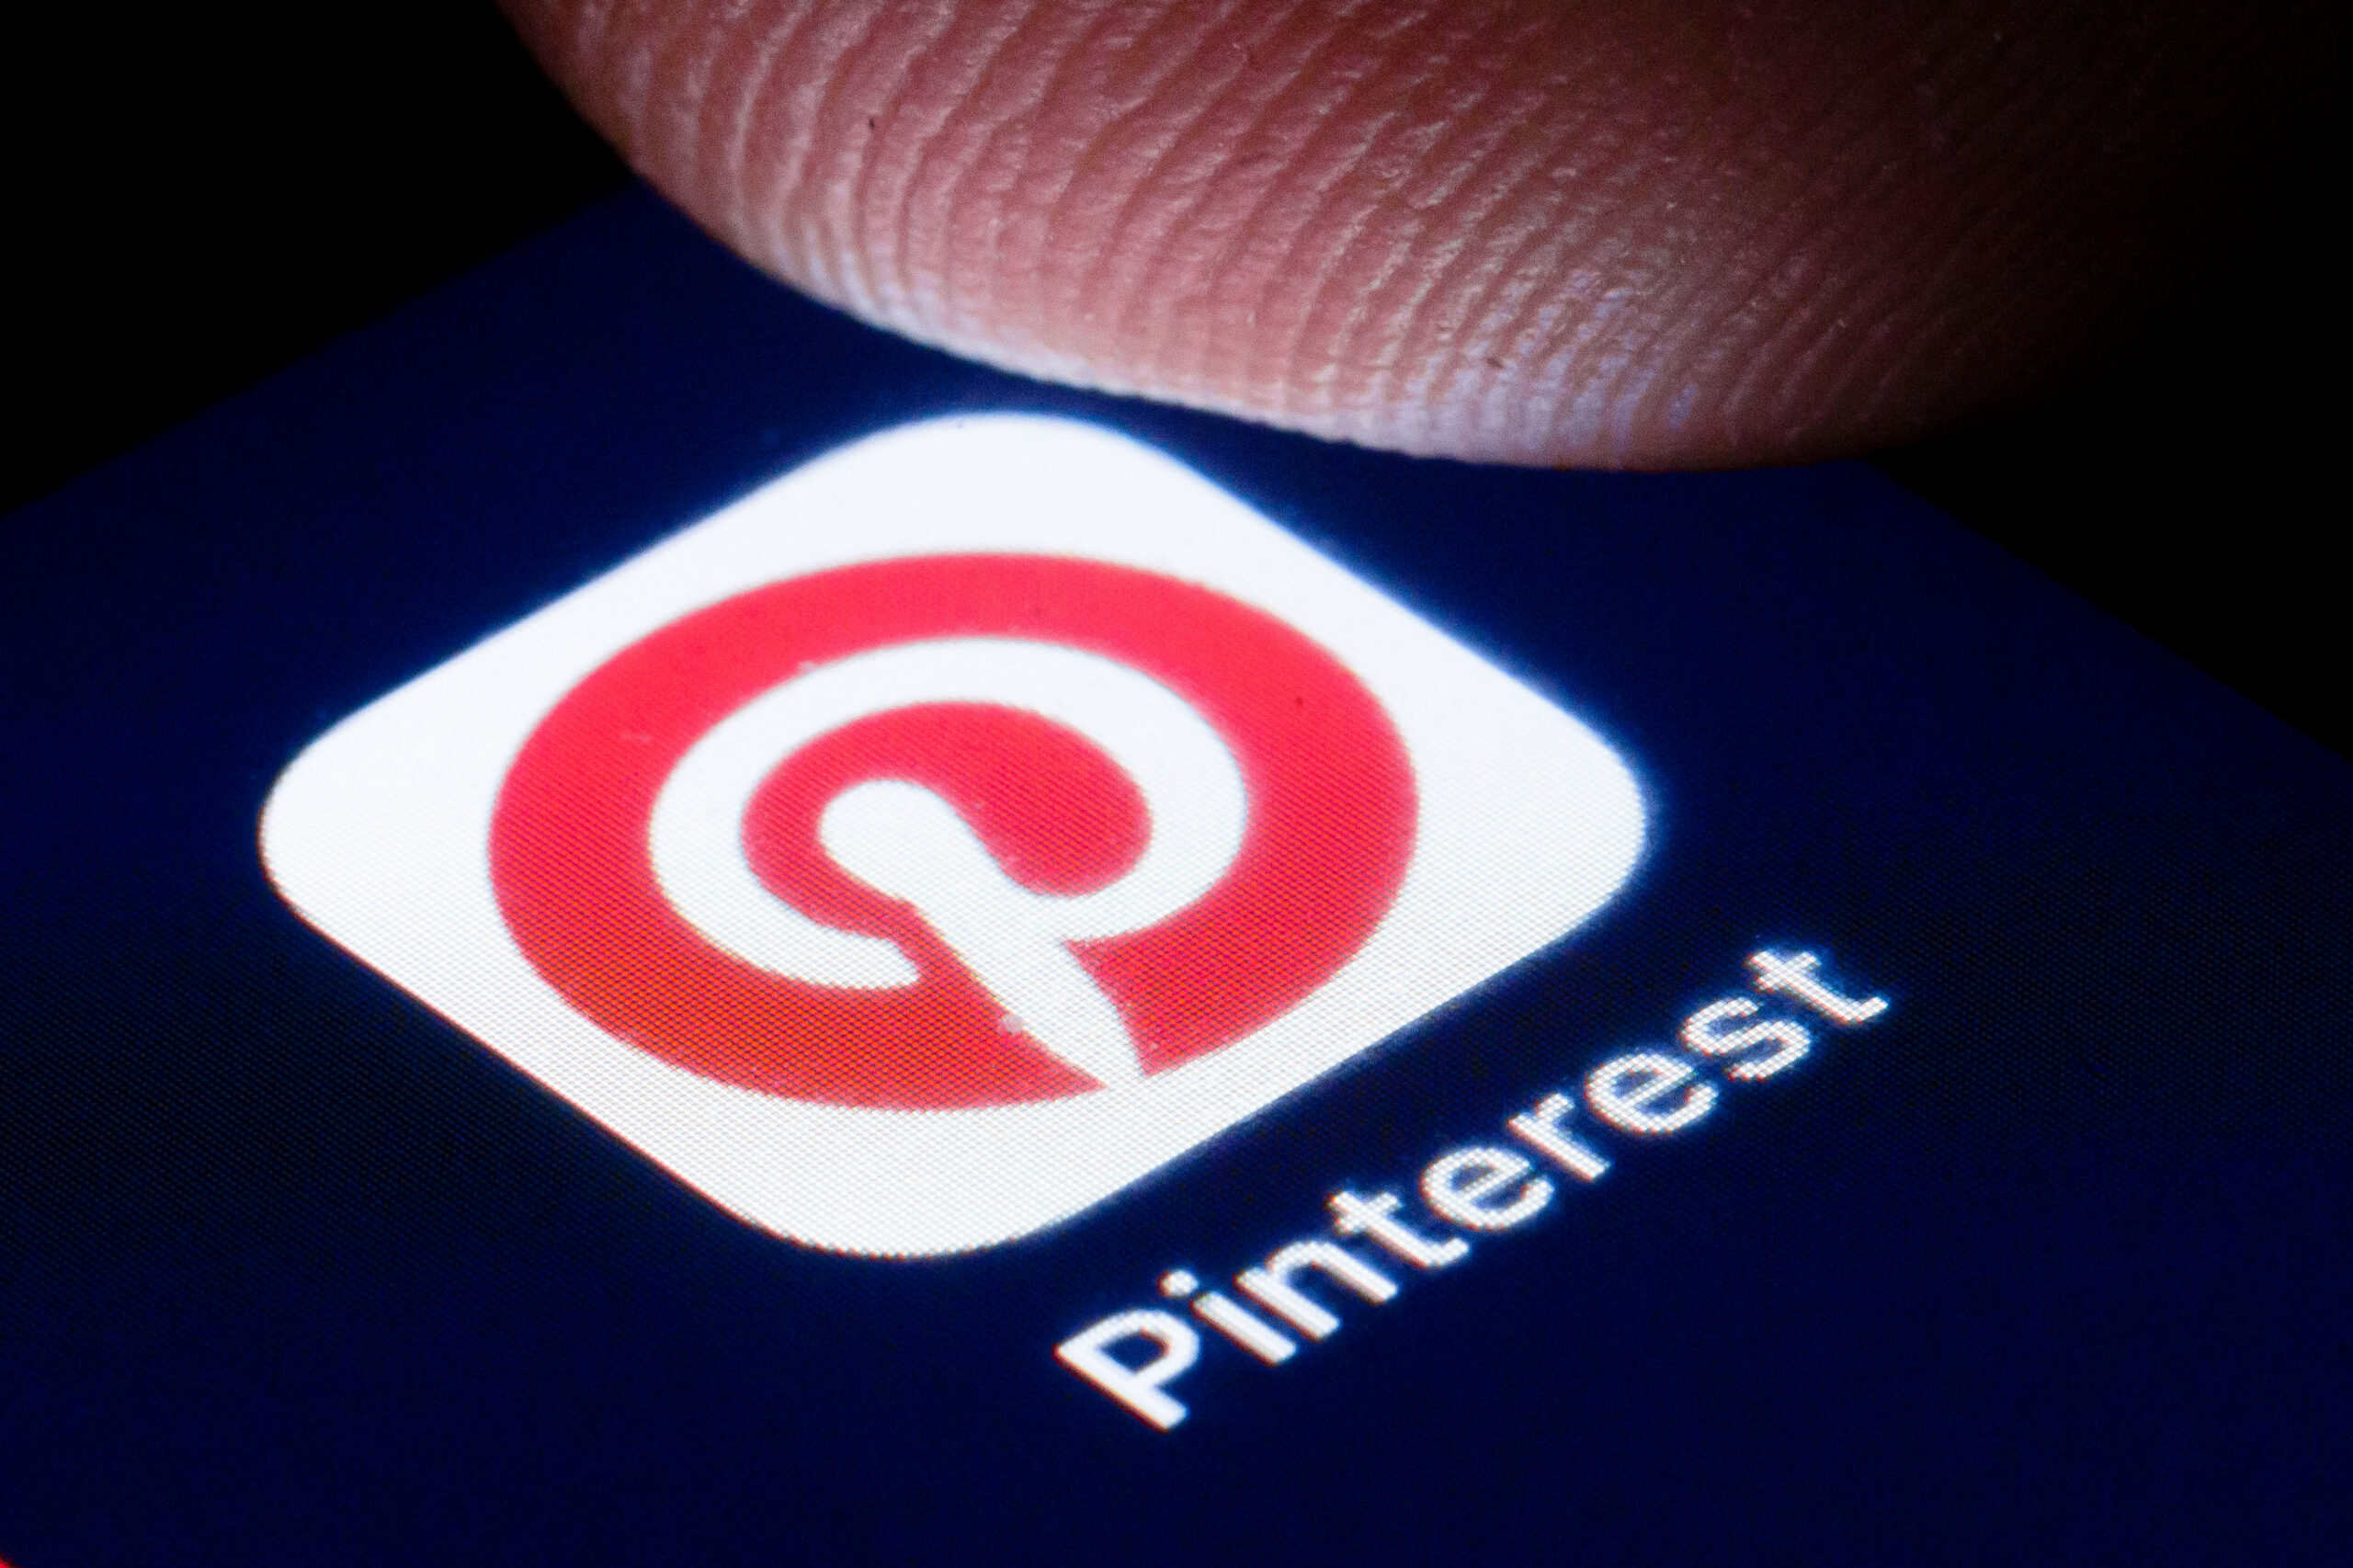 Pinterest ex-COO claims she was fired over sex bias complaint